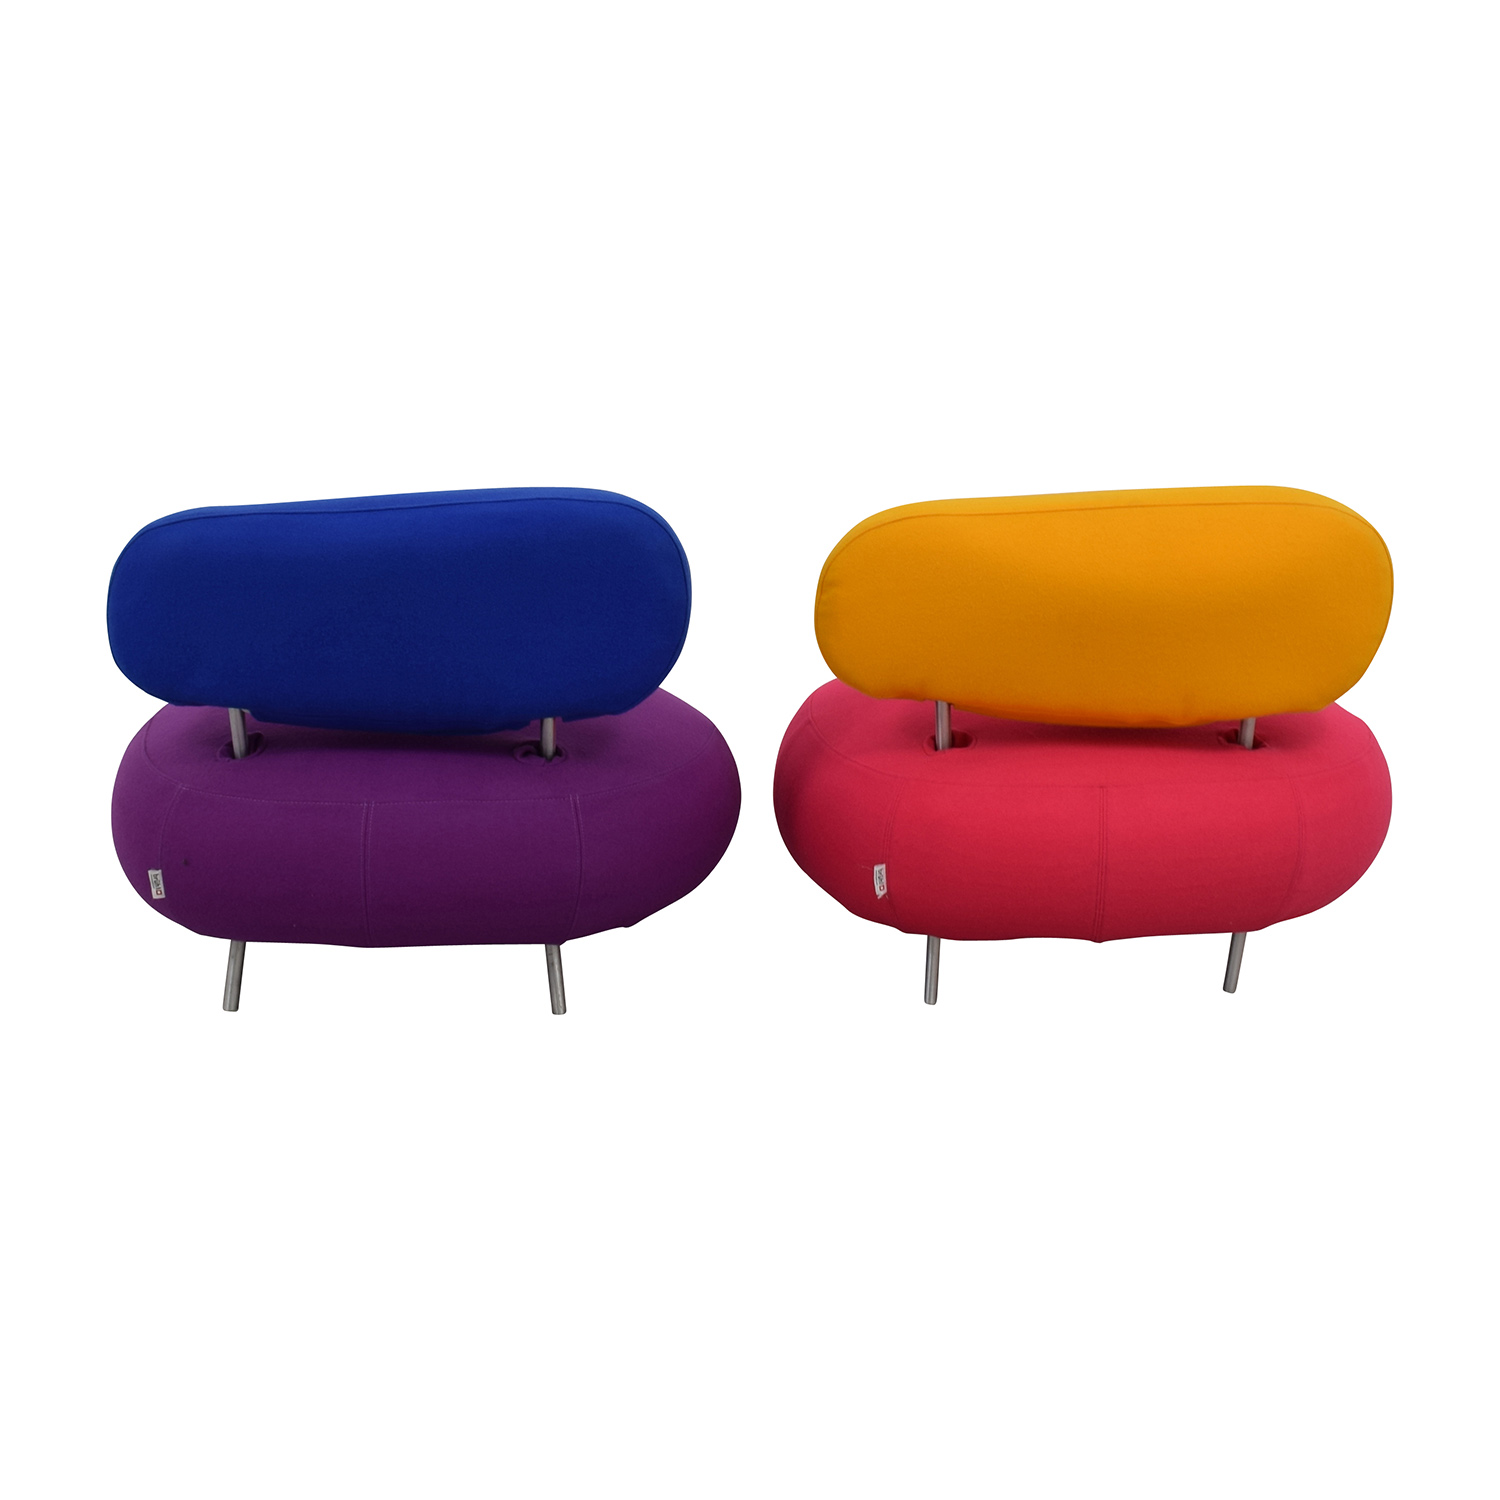 Brühl & Sippold Mosspink Wool Custom Made Chairs / Accent Chairs